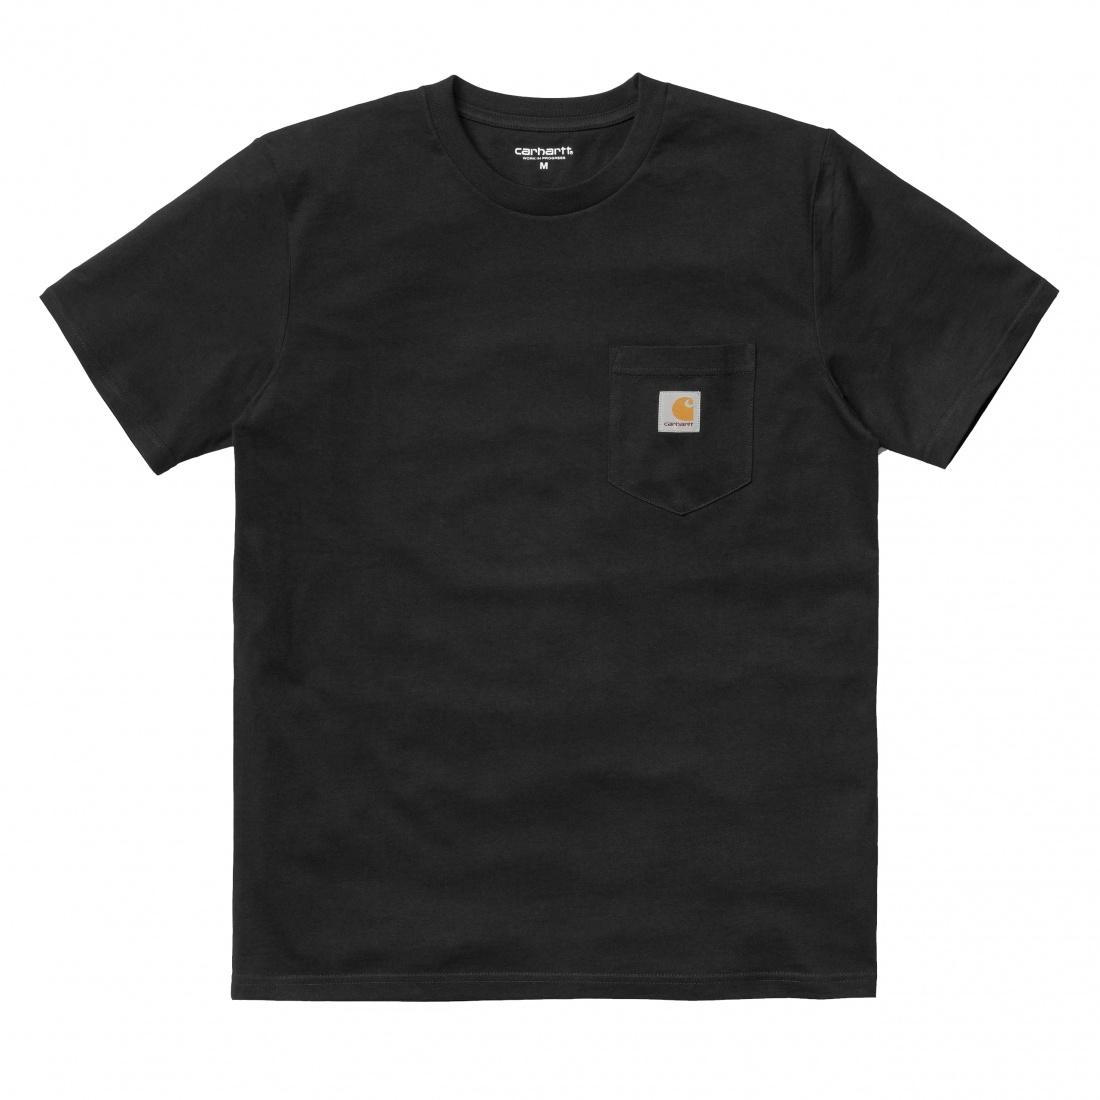 Carhartt Футболка Carhartt WIP Black M футболка женская carhartt wip carrie yale ash heather